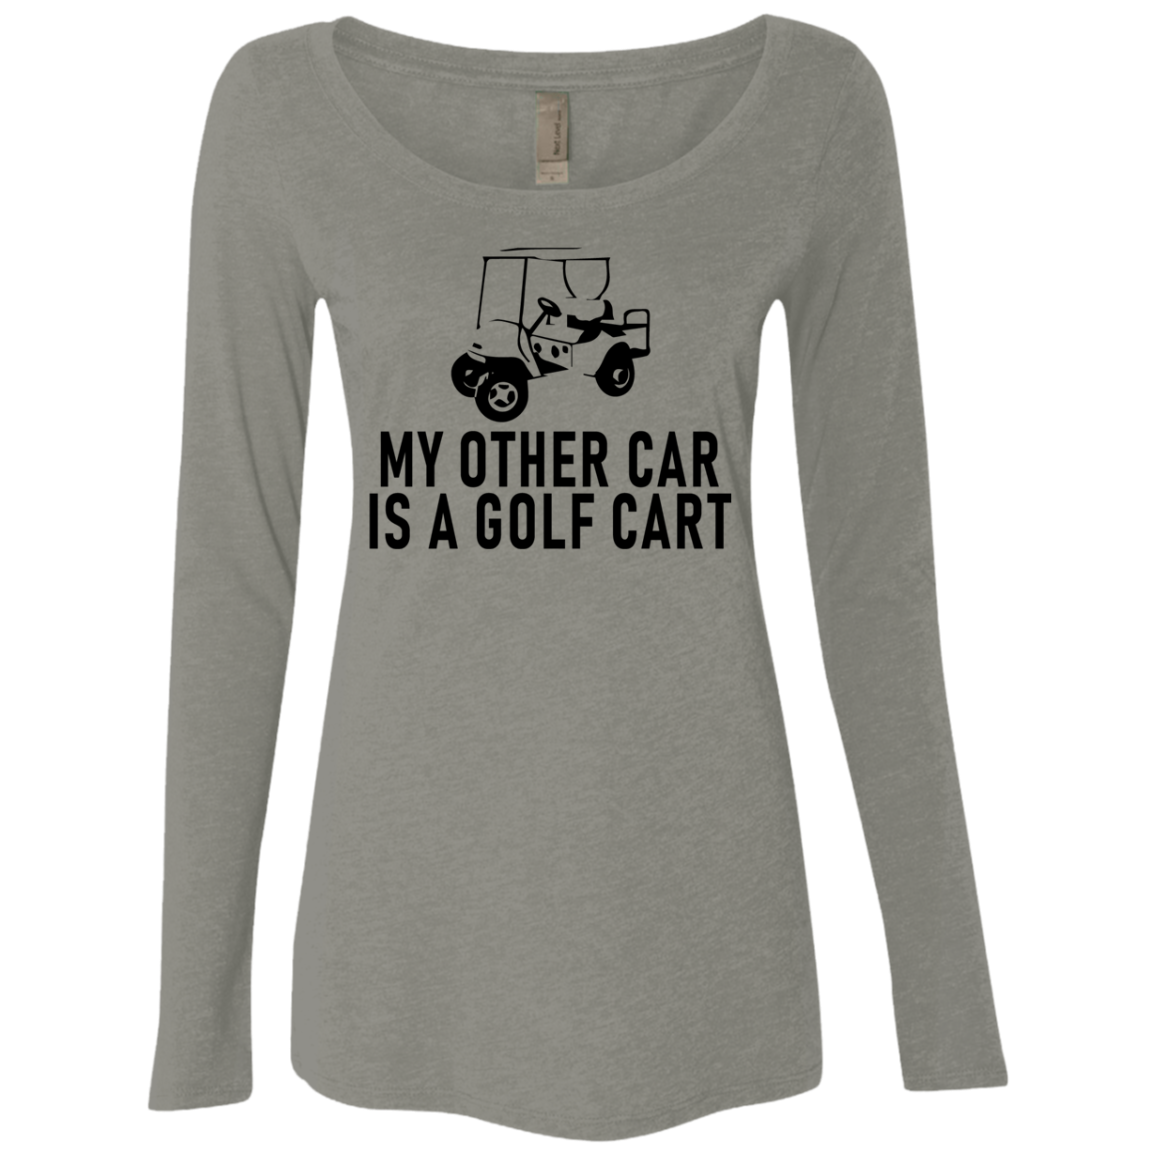 My Other Car Is A Golf Cart Women's Long Sleeve Tee